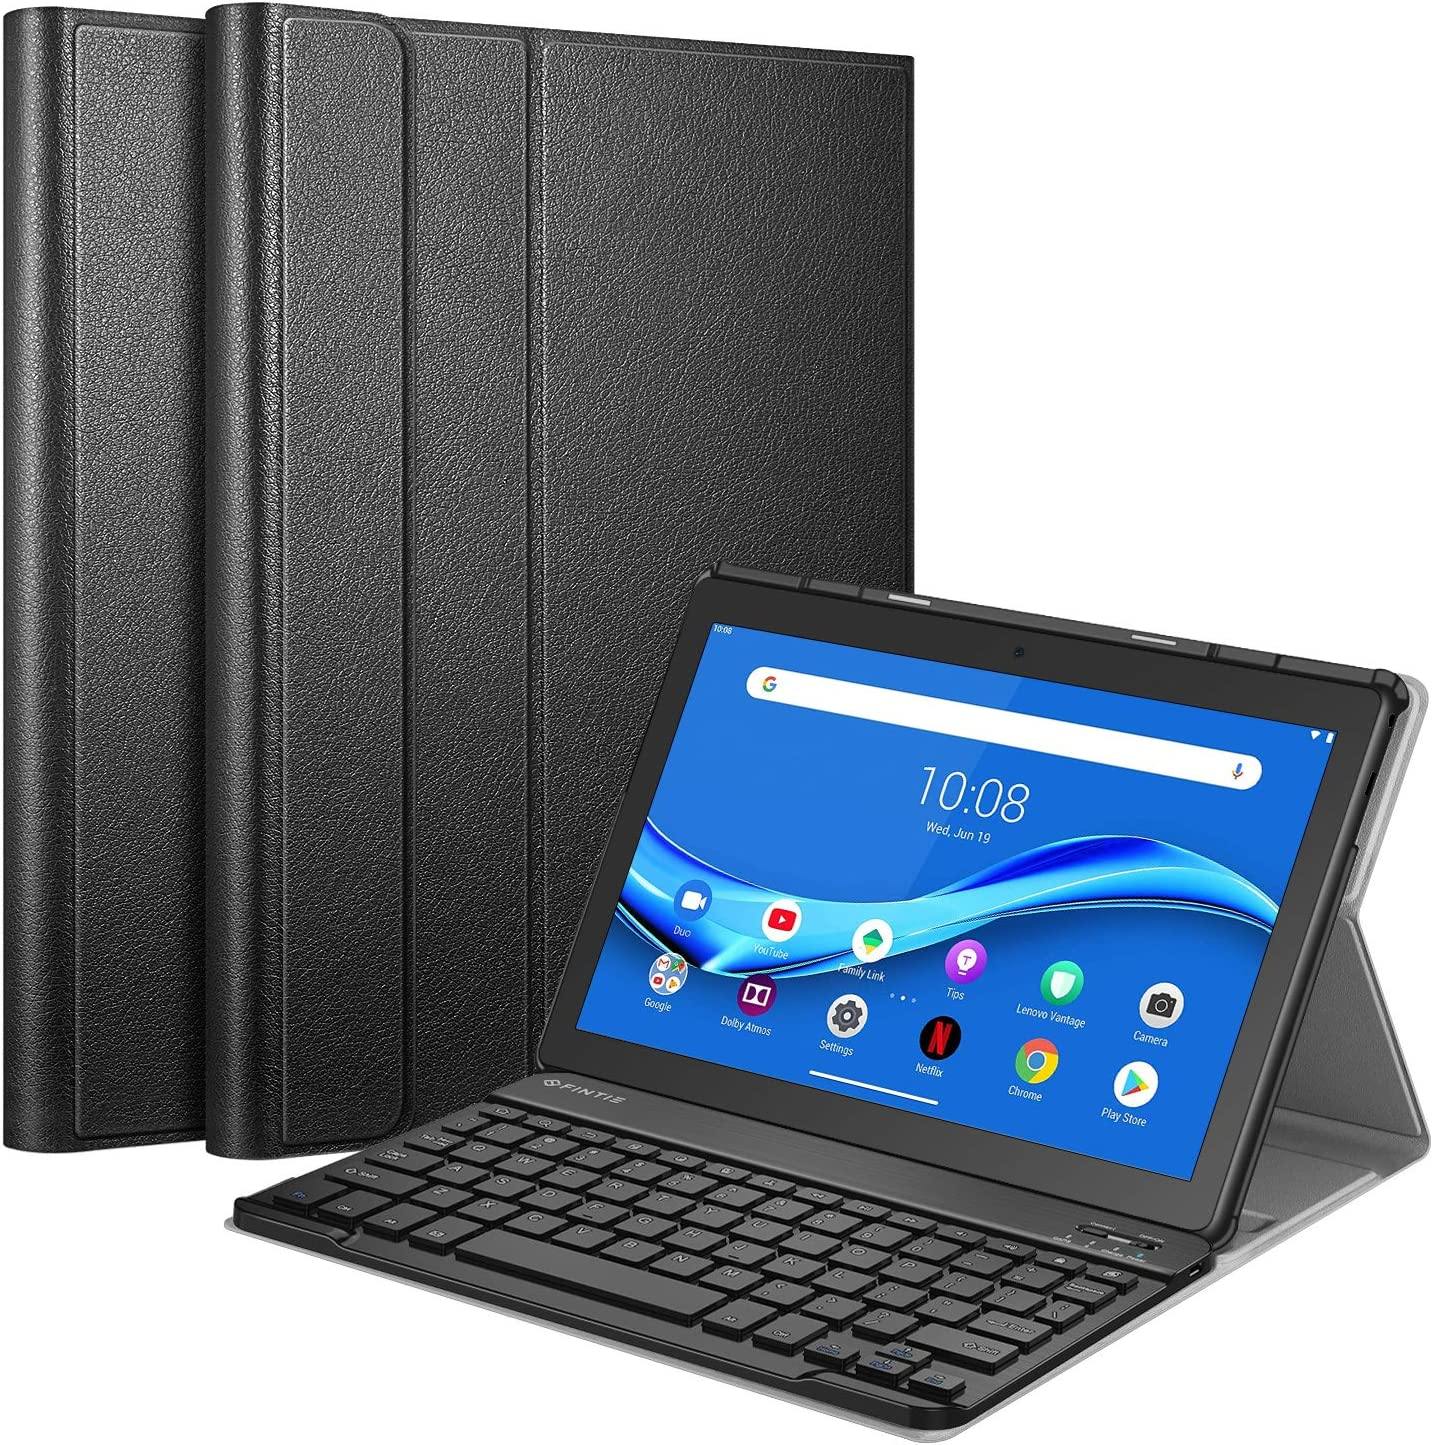 """CaseBot Keyboard Case for Lenovo Smart Tab M10 HD TB-X505F / M10 TB-X605F 10.1"""" Tablet, Slim Shell Lightweight Stand Cover with Detachable Wireless Bluetooth Keyboard, Black"""